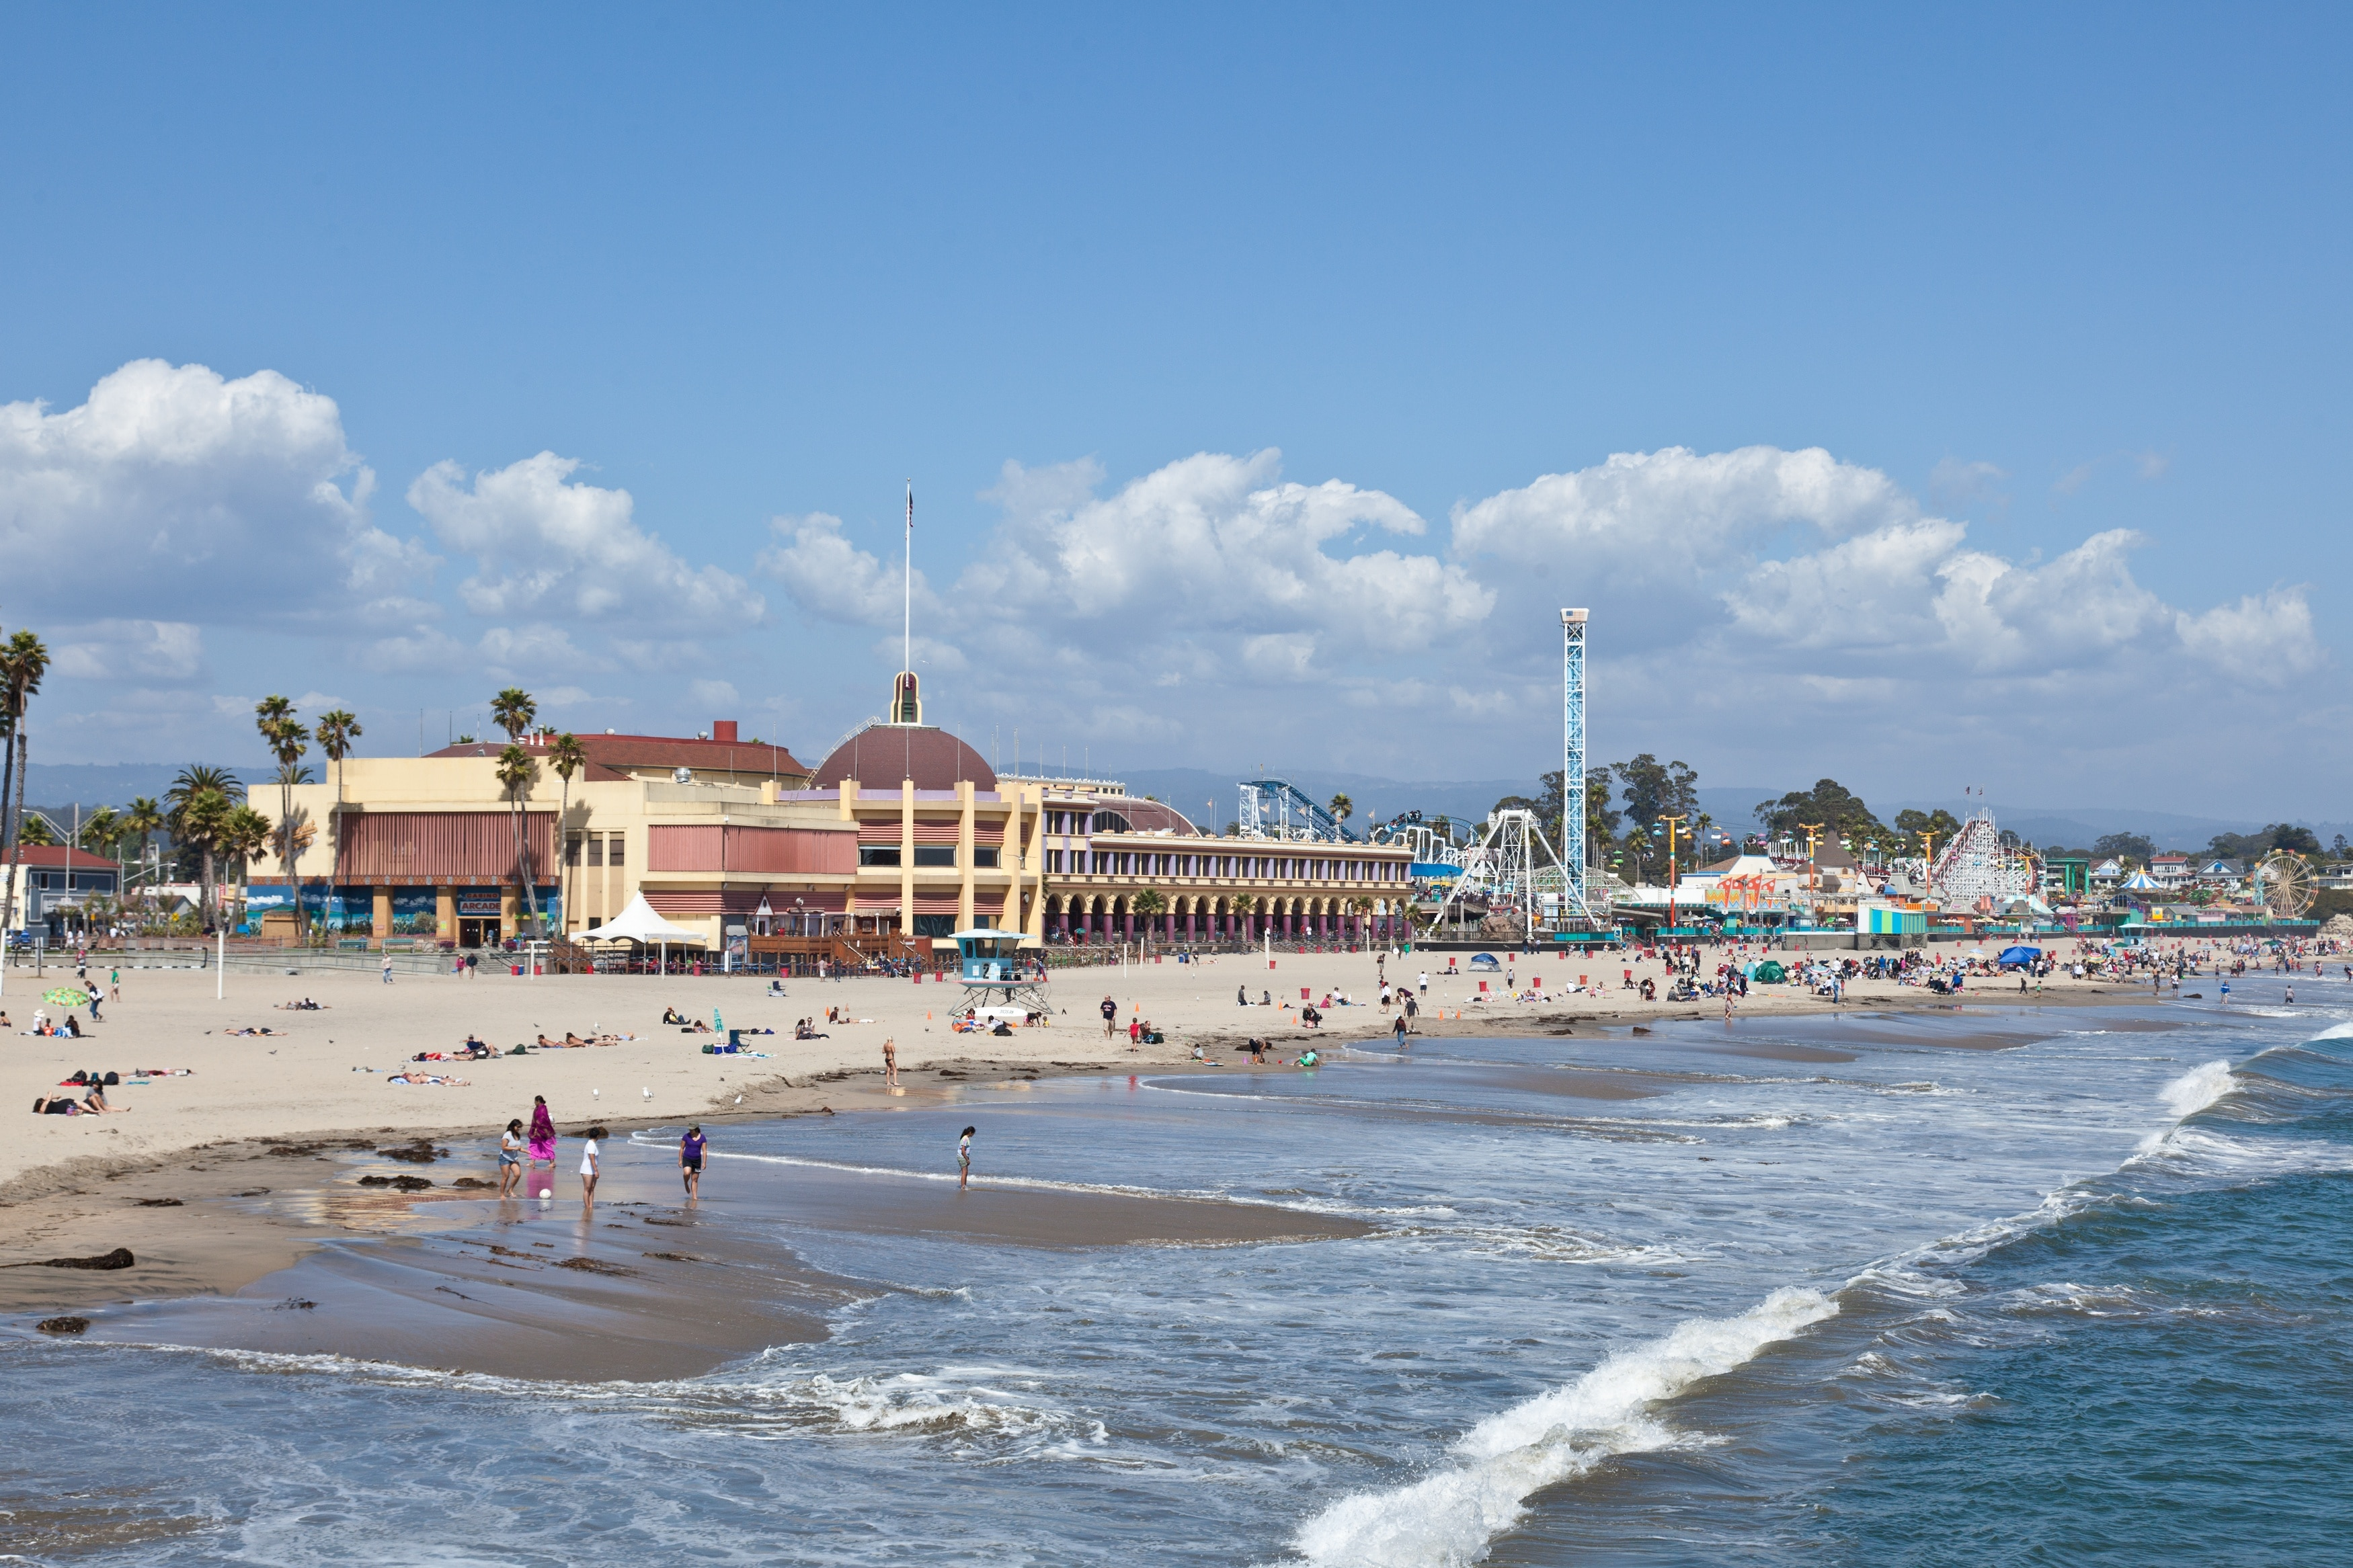 Enjoy the thrills at Santa Cruz Beach Boardwalk and find out why people love this theme park in Santa Cruz. Attend a sporting event in this walkable area, or seek out the biking trails.